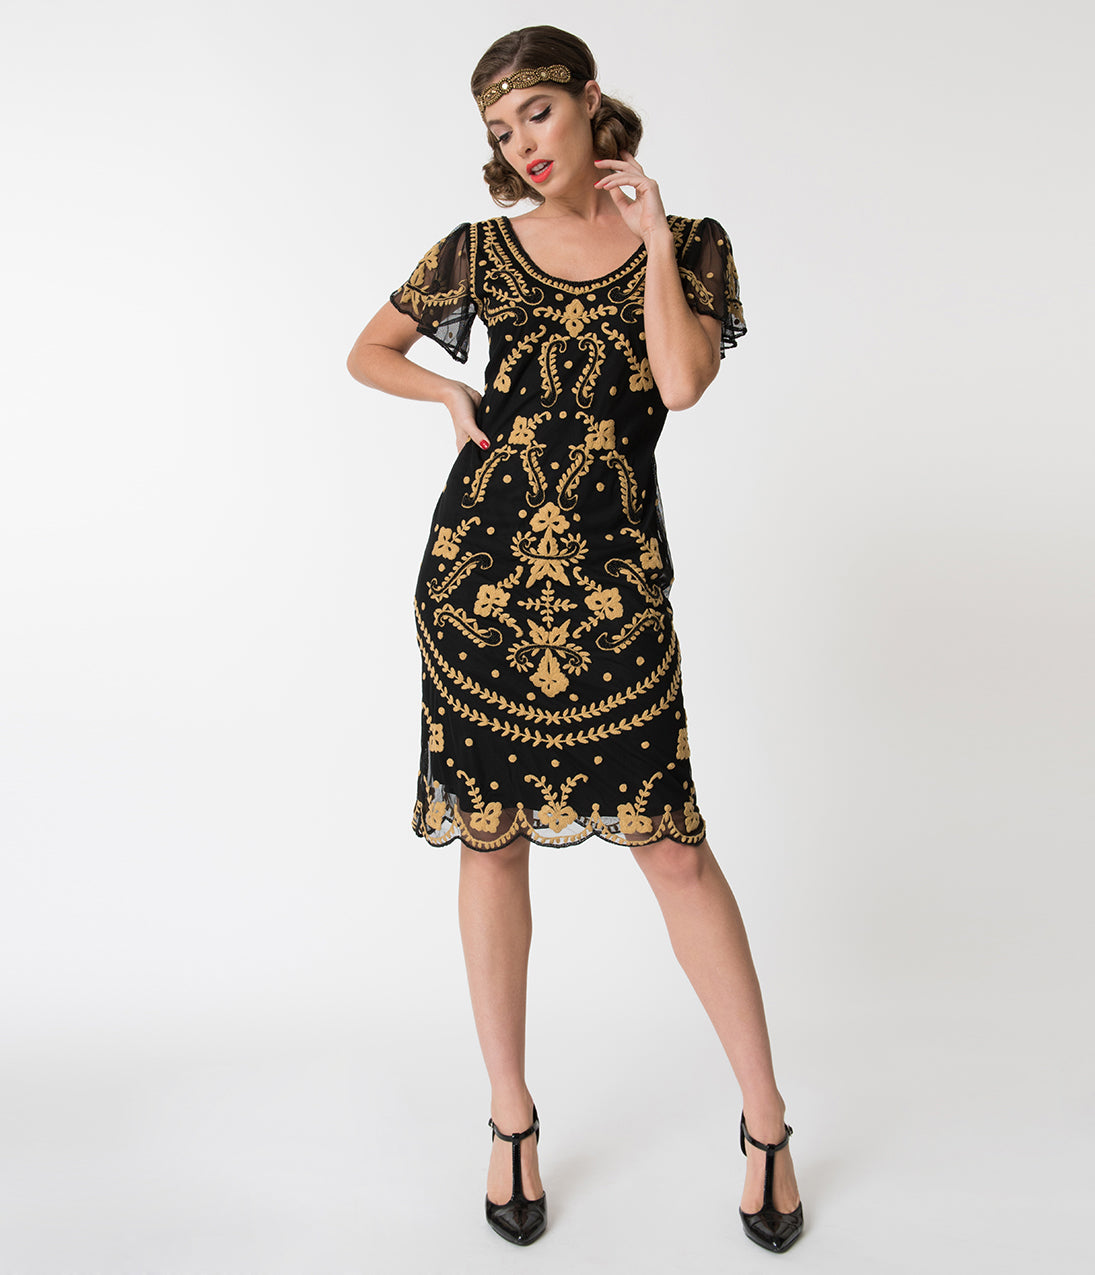 1920s Style Dresses, Flapper Dresses Vintage Style Black  Gold Embroidered Florence Flapper Dress $98.00 AT vintagedancer.com